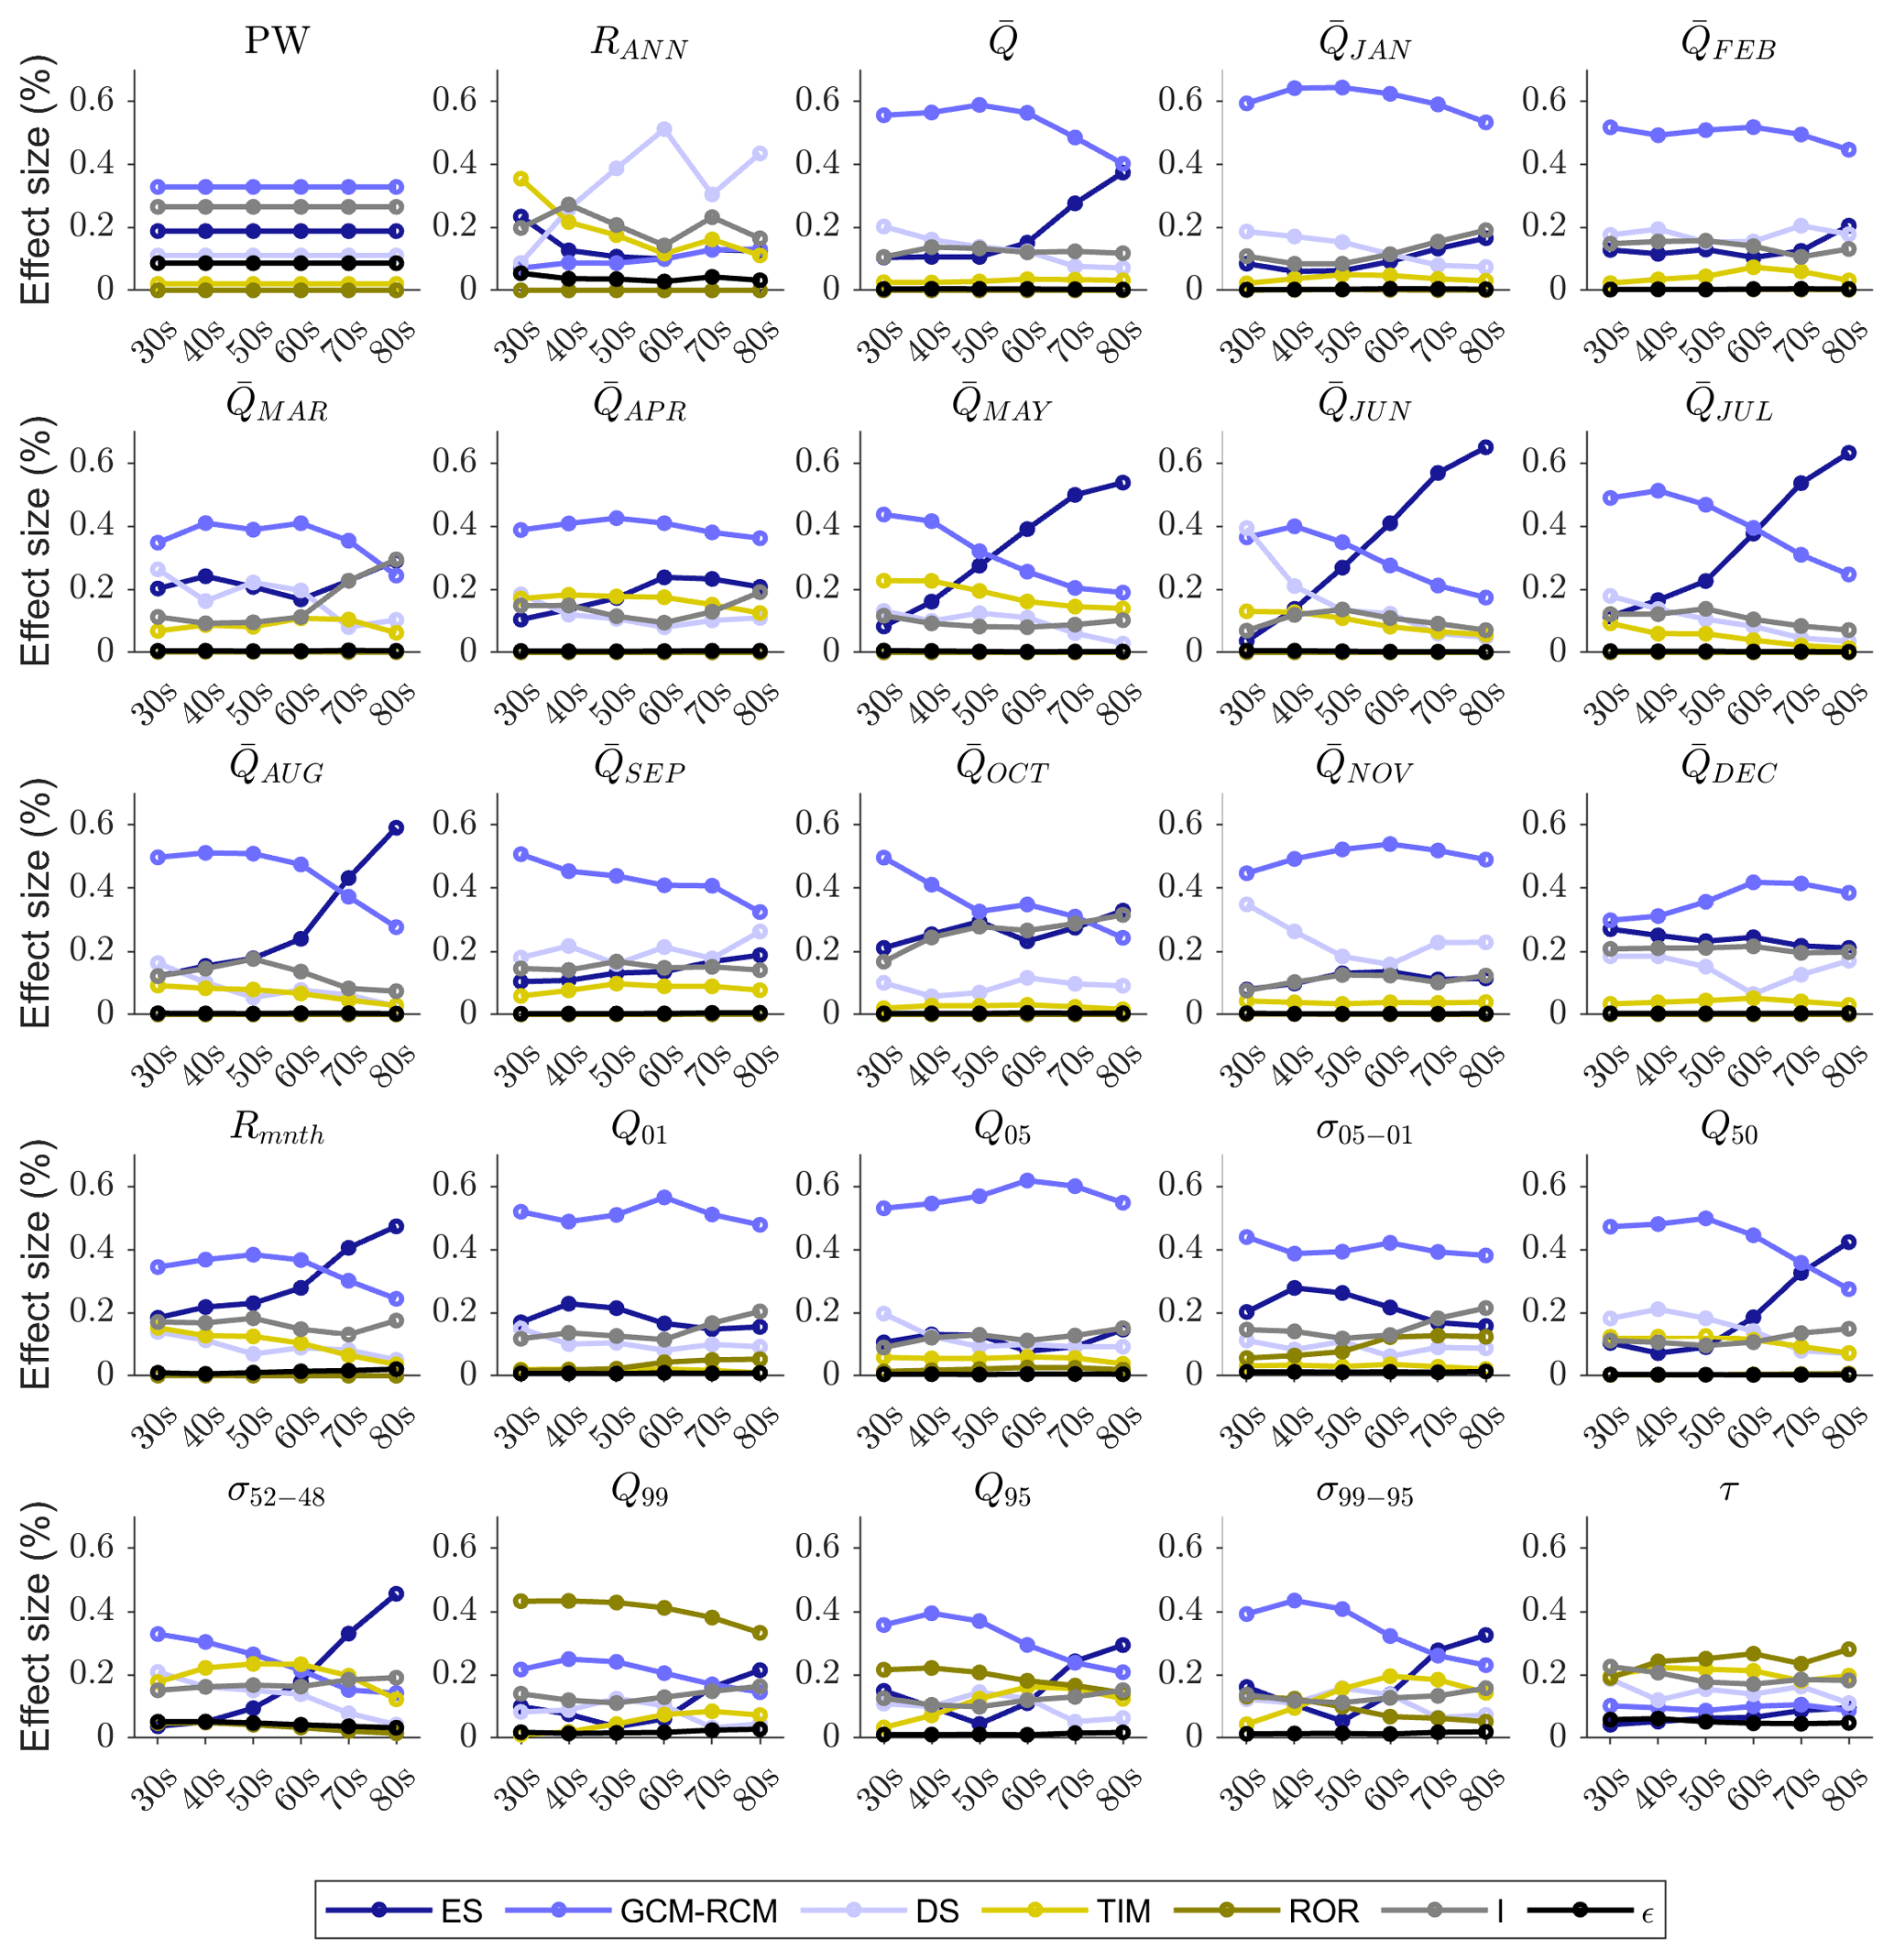 HESS - Future evolution and uncertainty of river flow regime